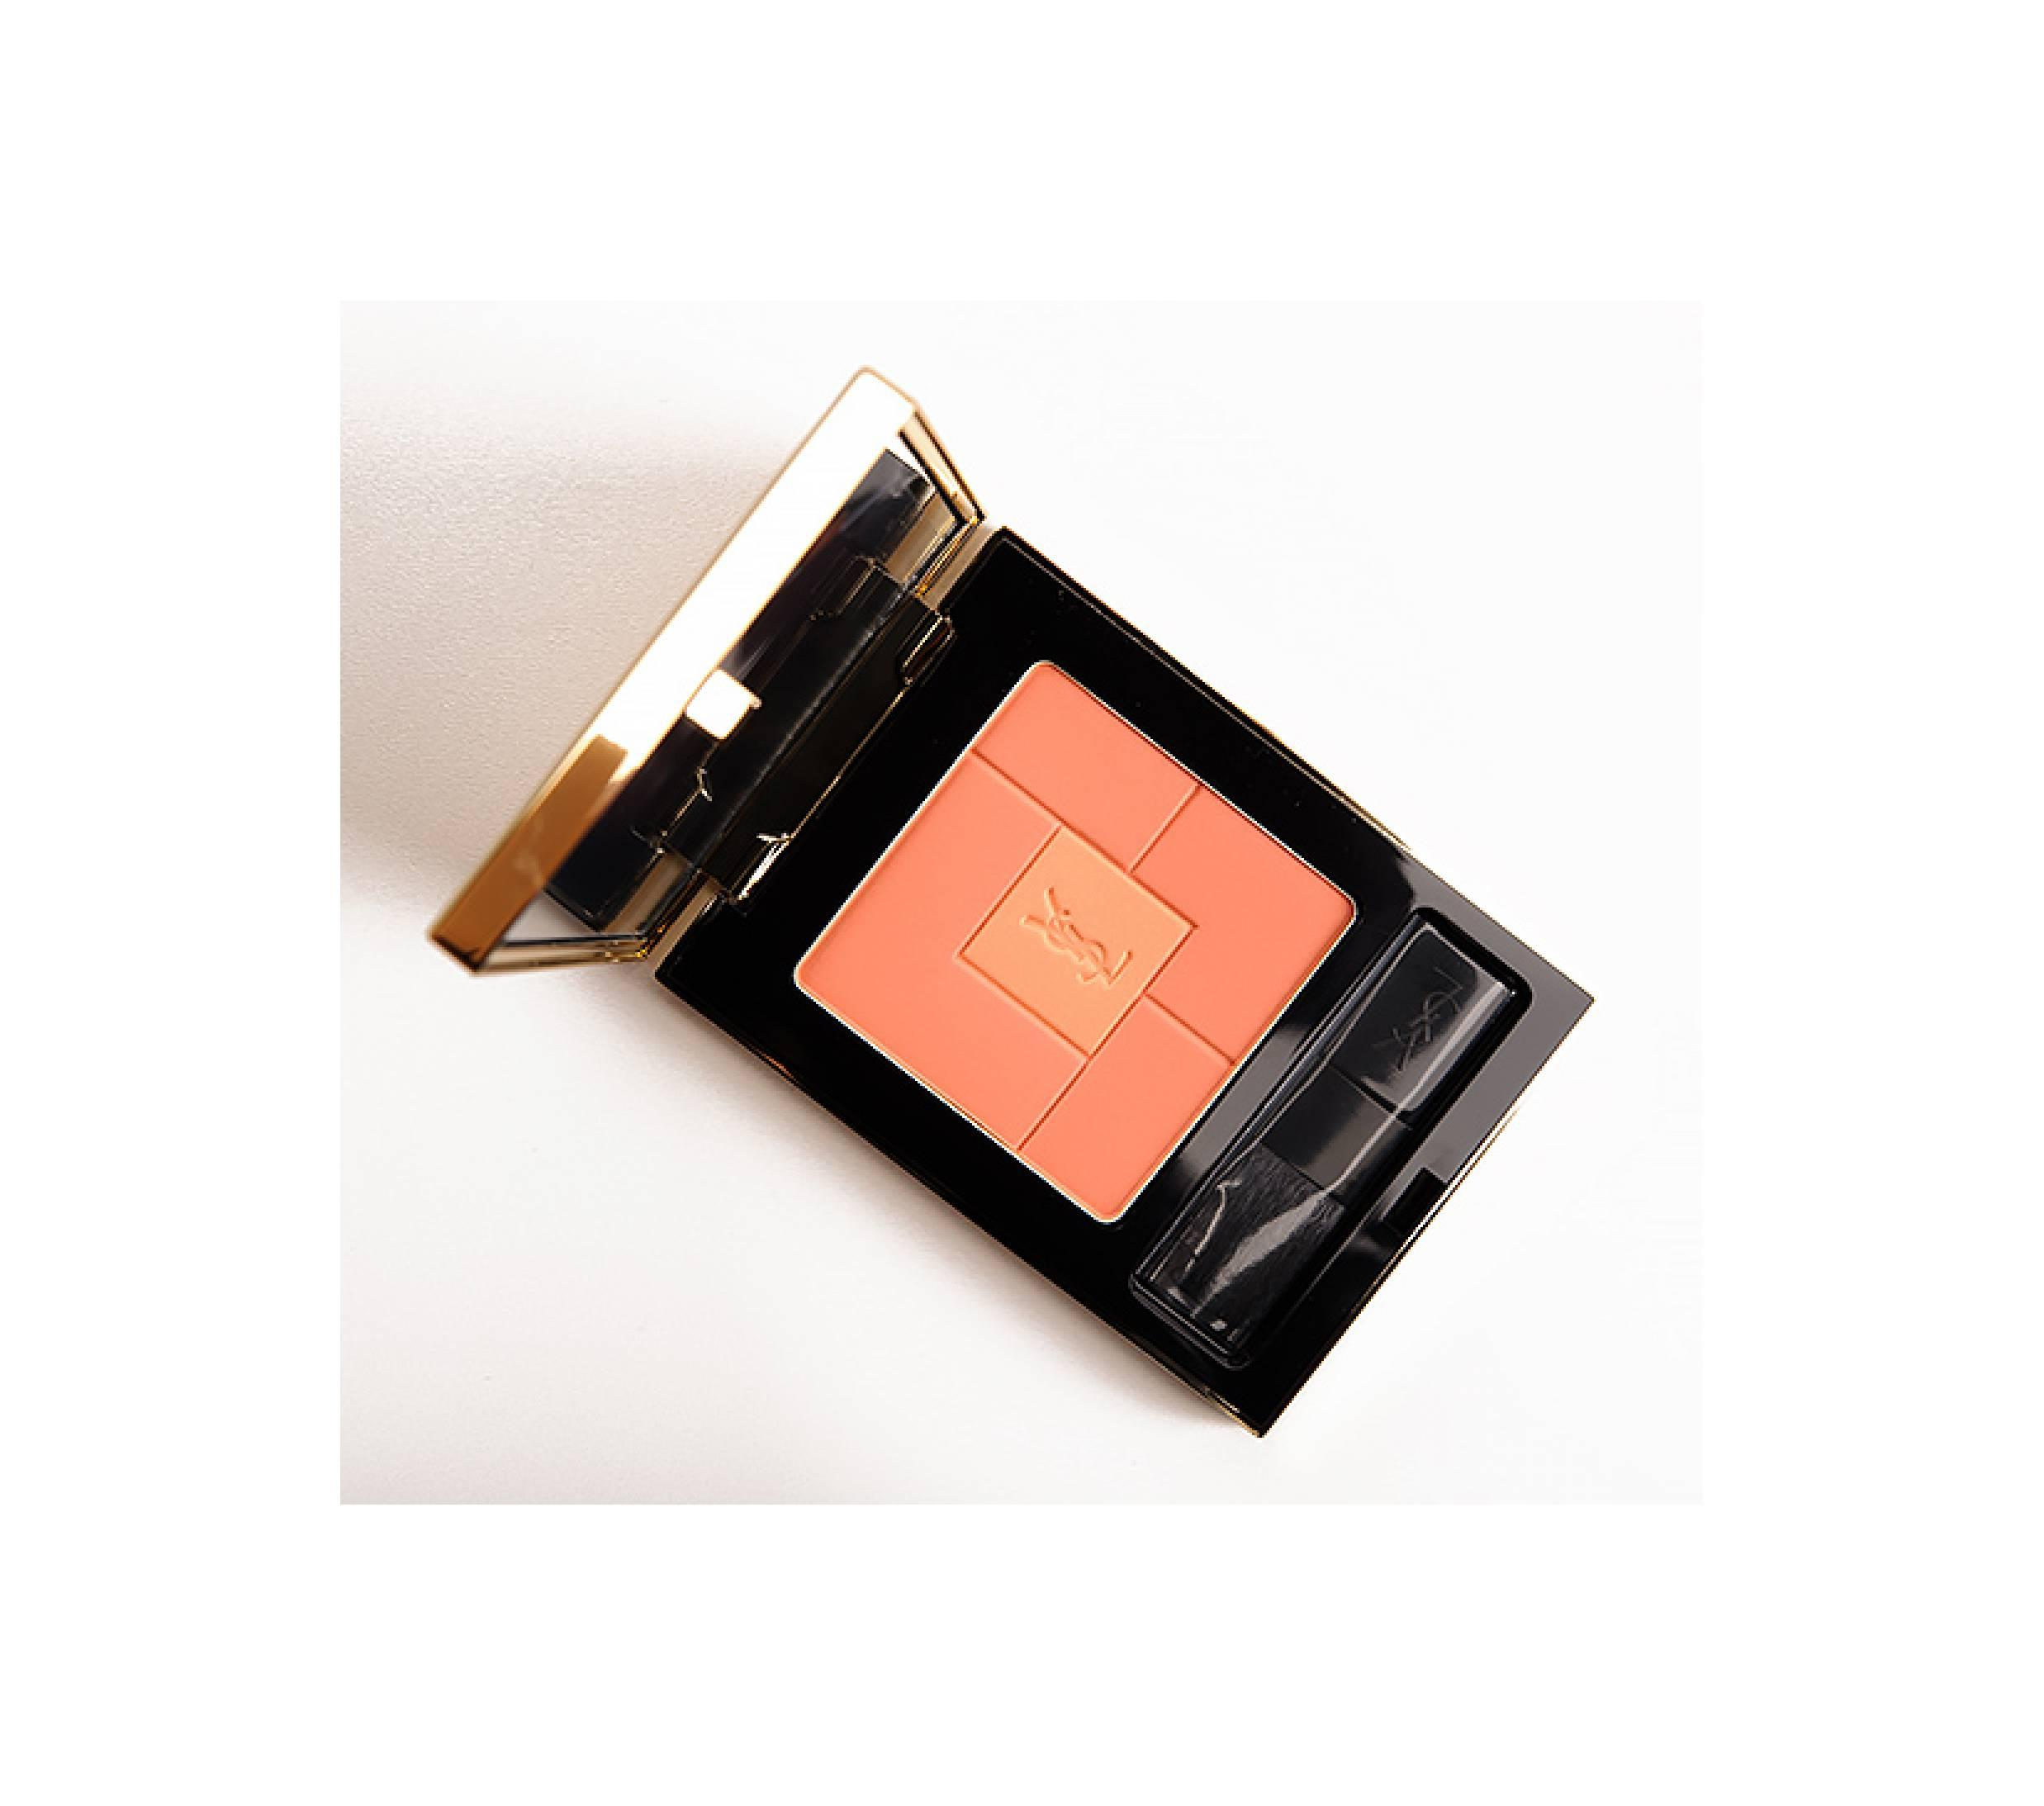 YSL BLUSH VOLUPTE - 7 REBELLE